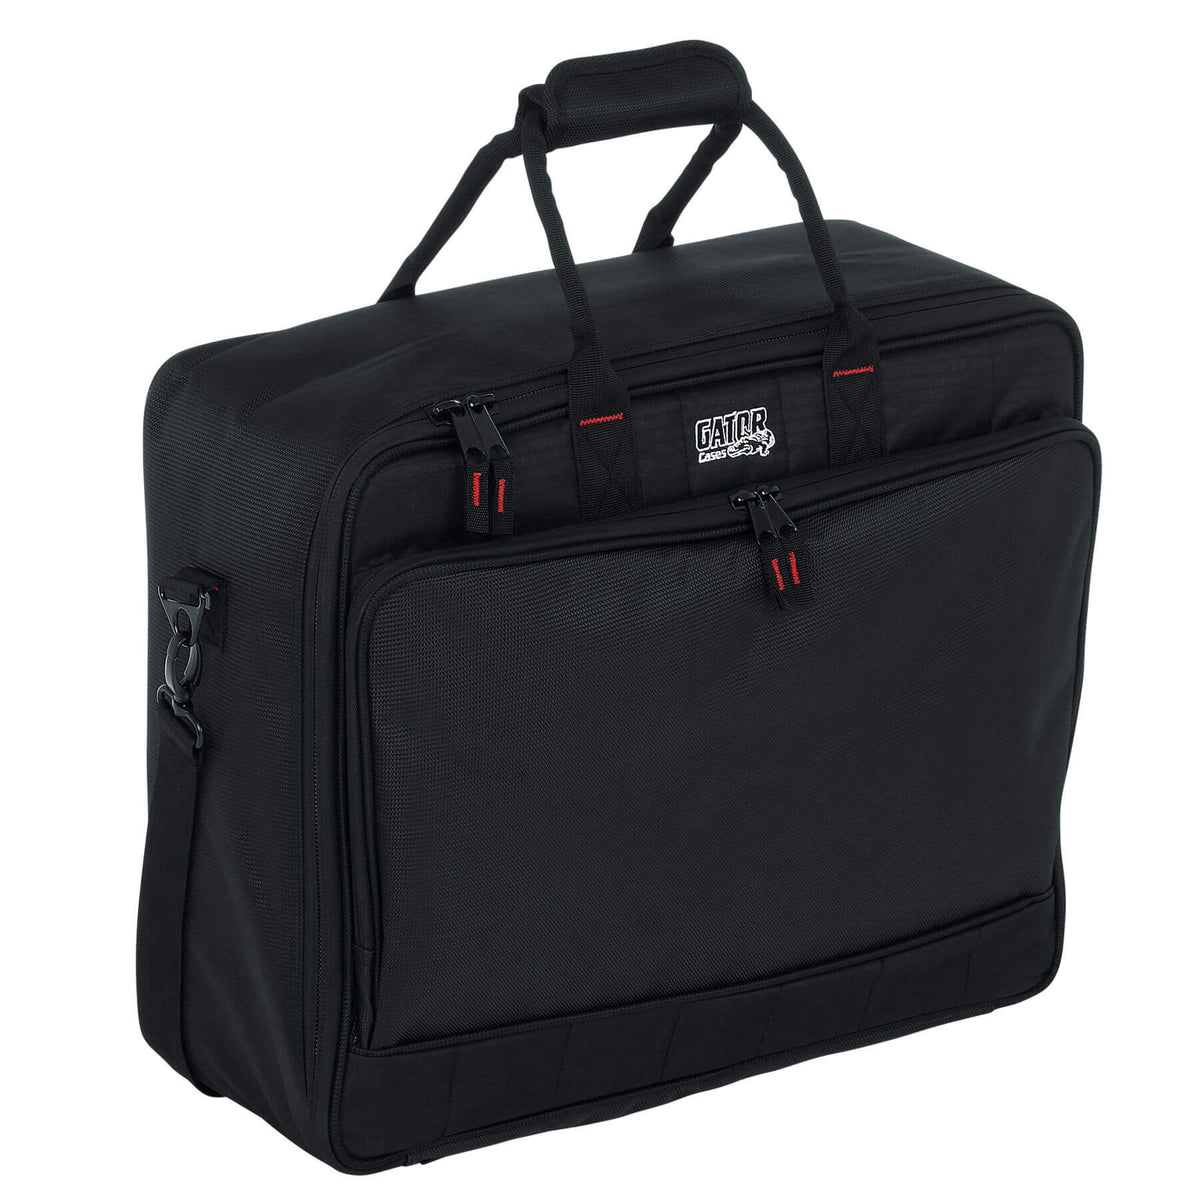 Gator Cases Padded Nylon Equipment Bag for Midas DM16 Mixers